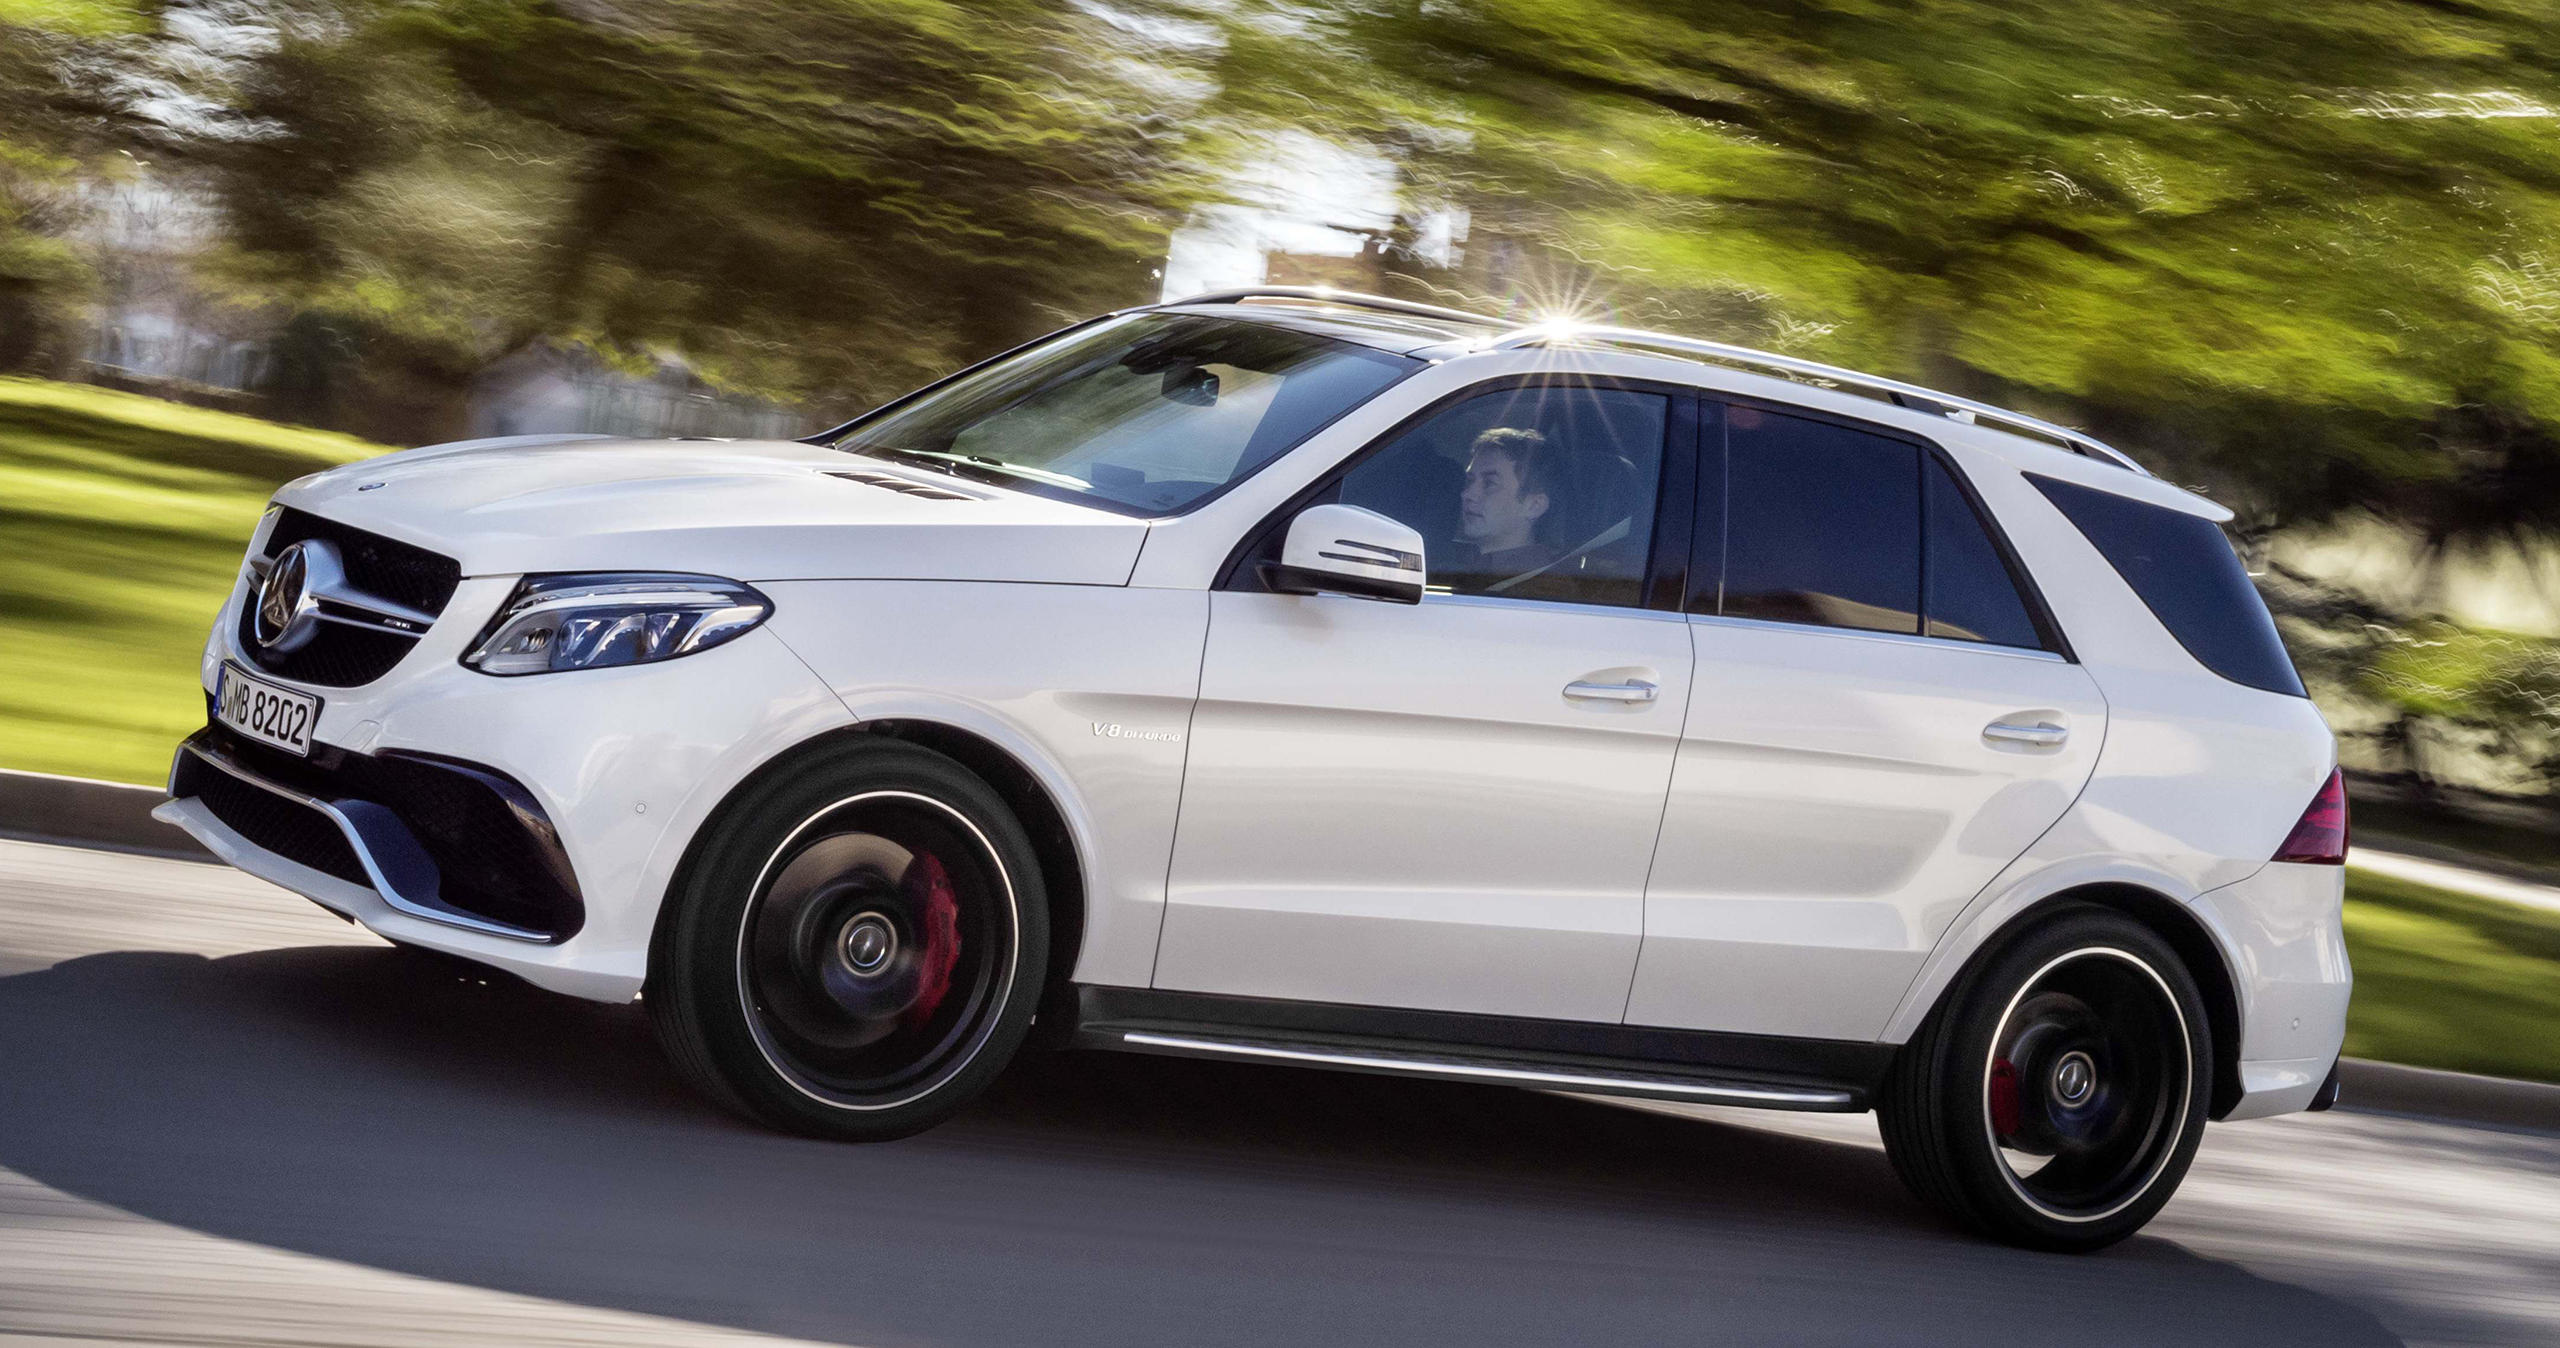 Mercedes Gle Amg >> Mercedes-AMG GLE 63 revealed ahead of NY debut – 5.5 litre twin-turbo V8 with 557 PS, S model ...